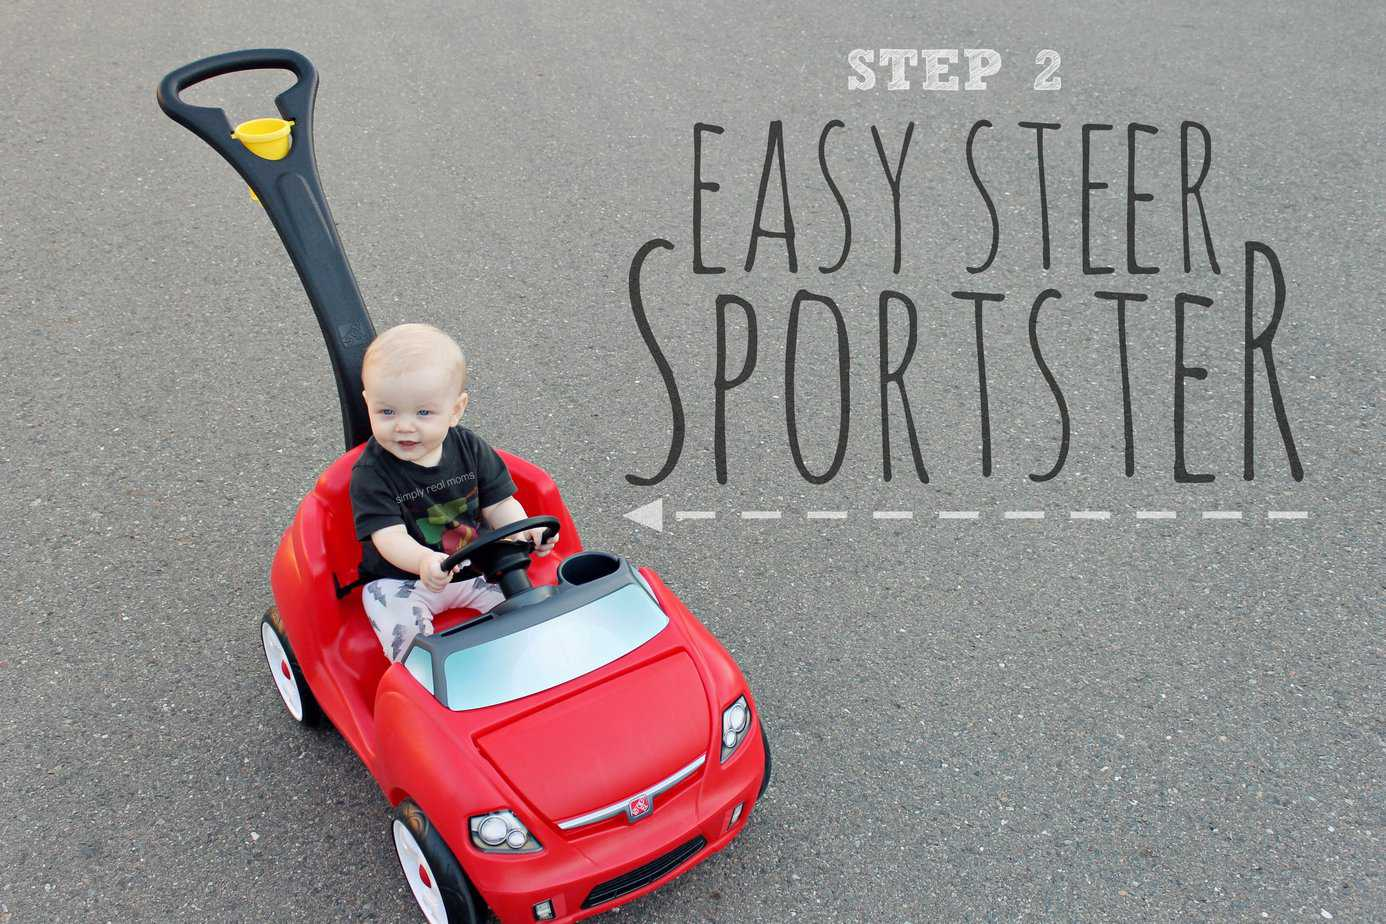 Step 2 Easy Steer Sportster 1